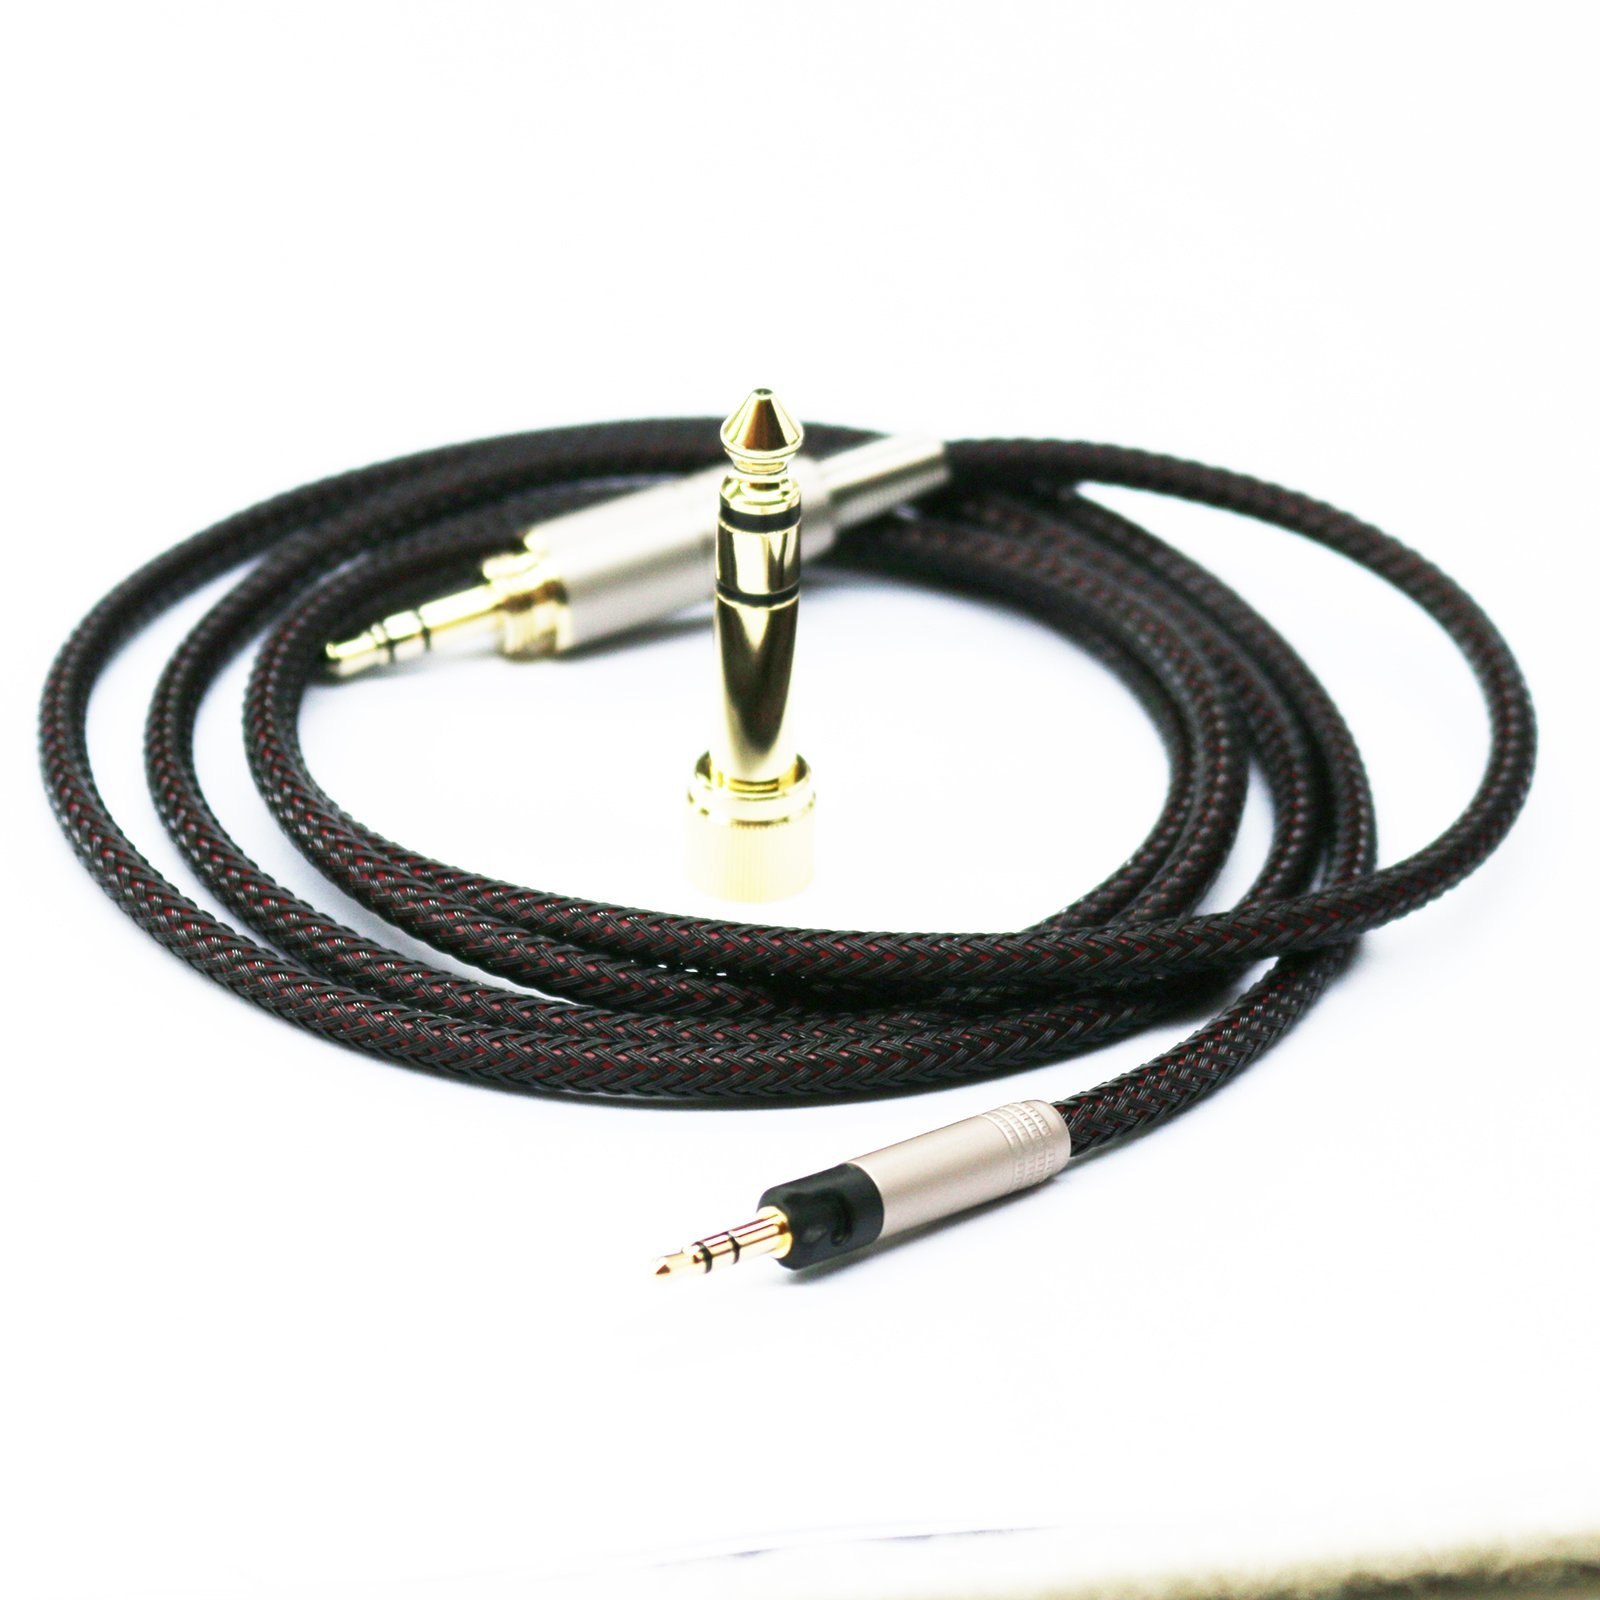 1.2m 3.9ft Replacement Audio Upgrade Cable for Sennheiser HD6 Mix HD7 HD8 DJ Headphones